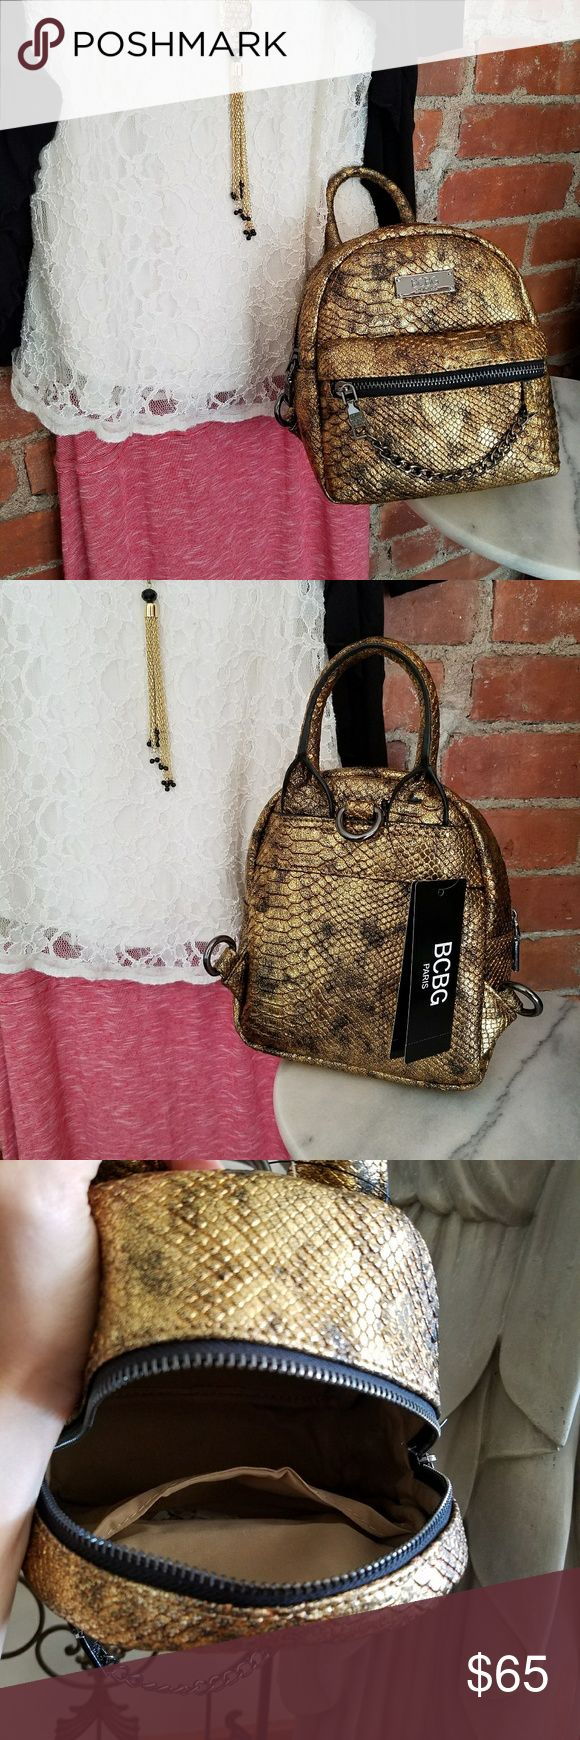 NWT BCBG Petite Backpack A petite bag,  but with plenty of room!  What a great gold color with it's hardware an unexpected gun metal gray!   So awesome! BCBG Bags Backpacks